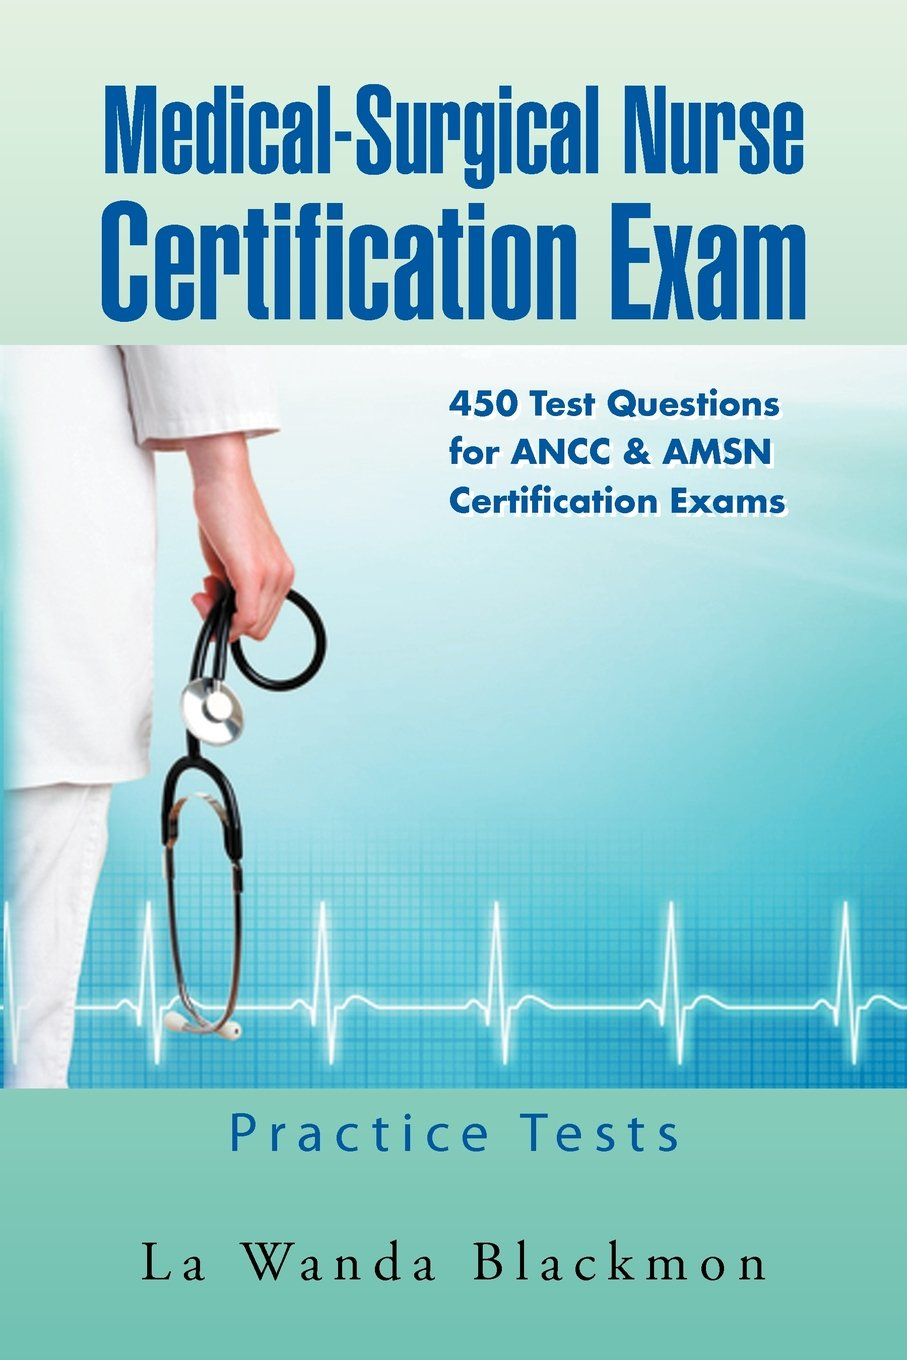 Buy Medical Surgical Nurse Certification Exam 450 Test Questions